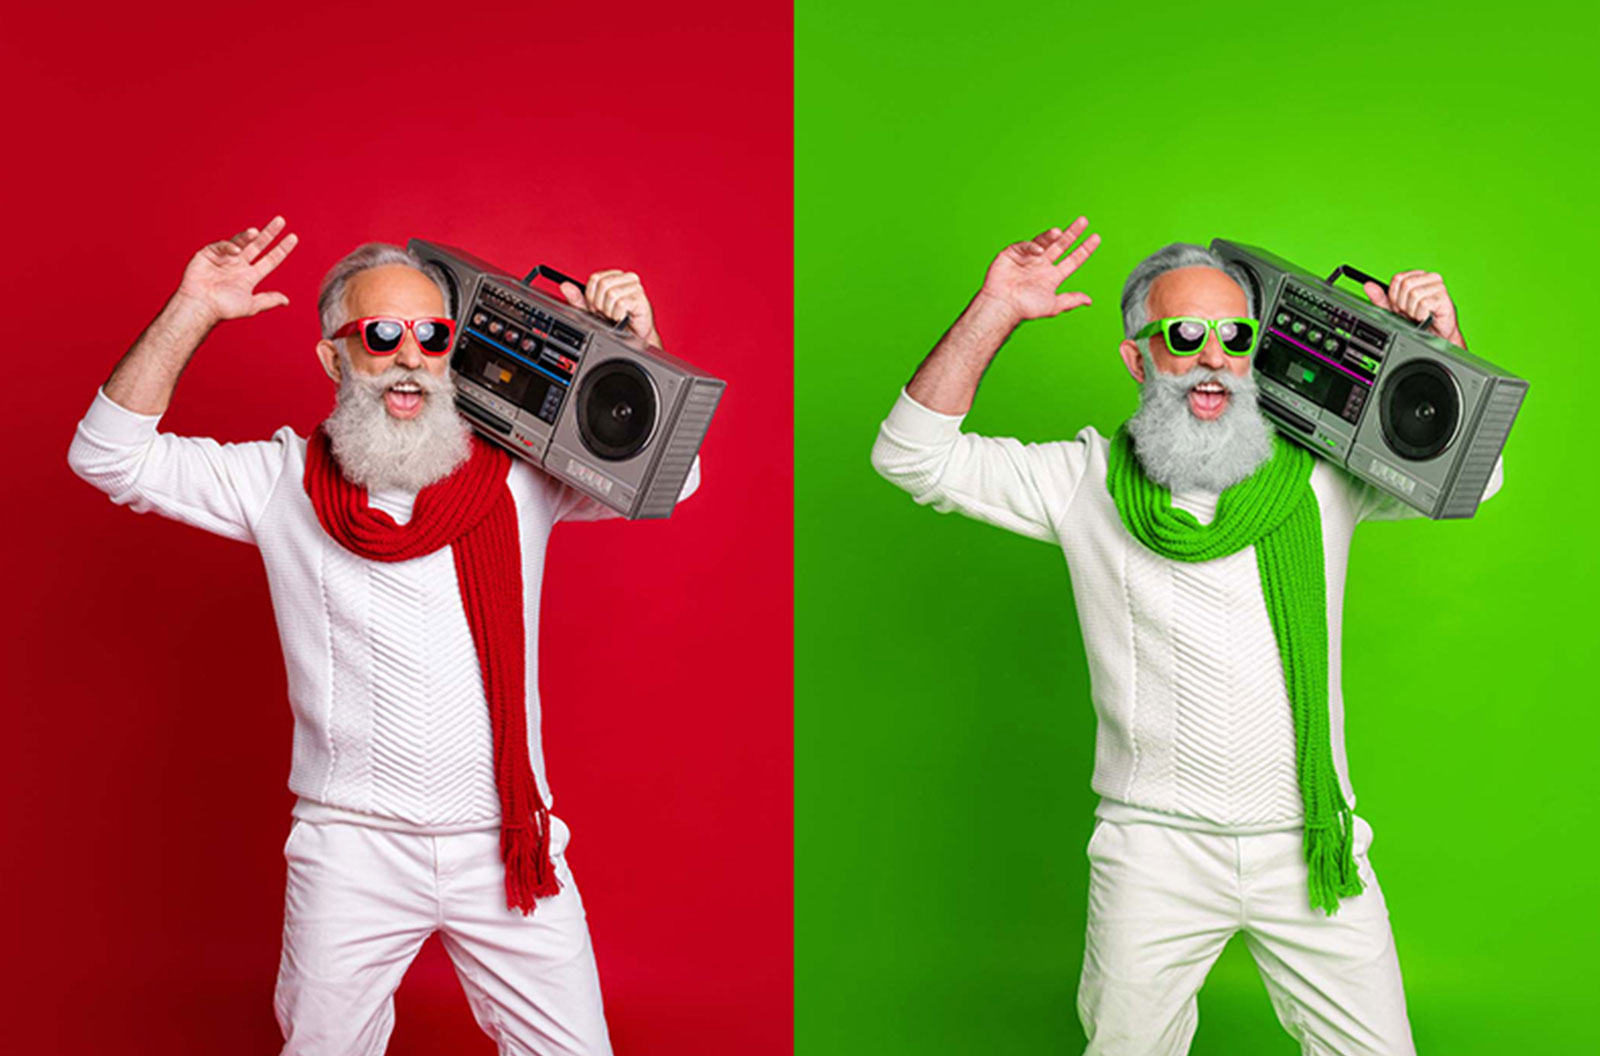 Side by side image comparisons of a bearded man with sunglasses holding a boombox to illustrate image color adjustments